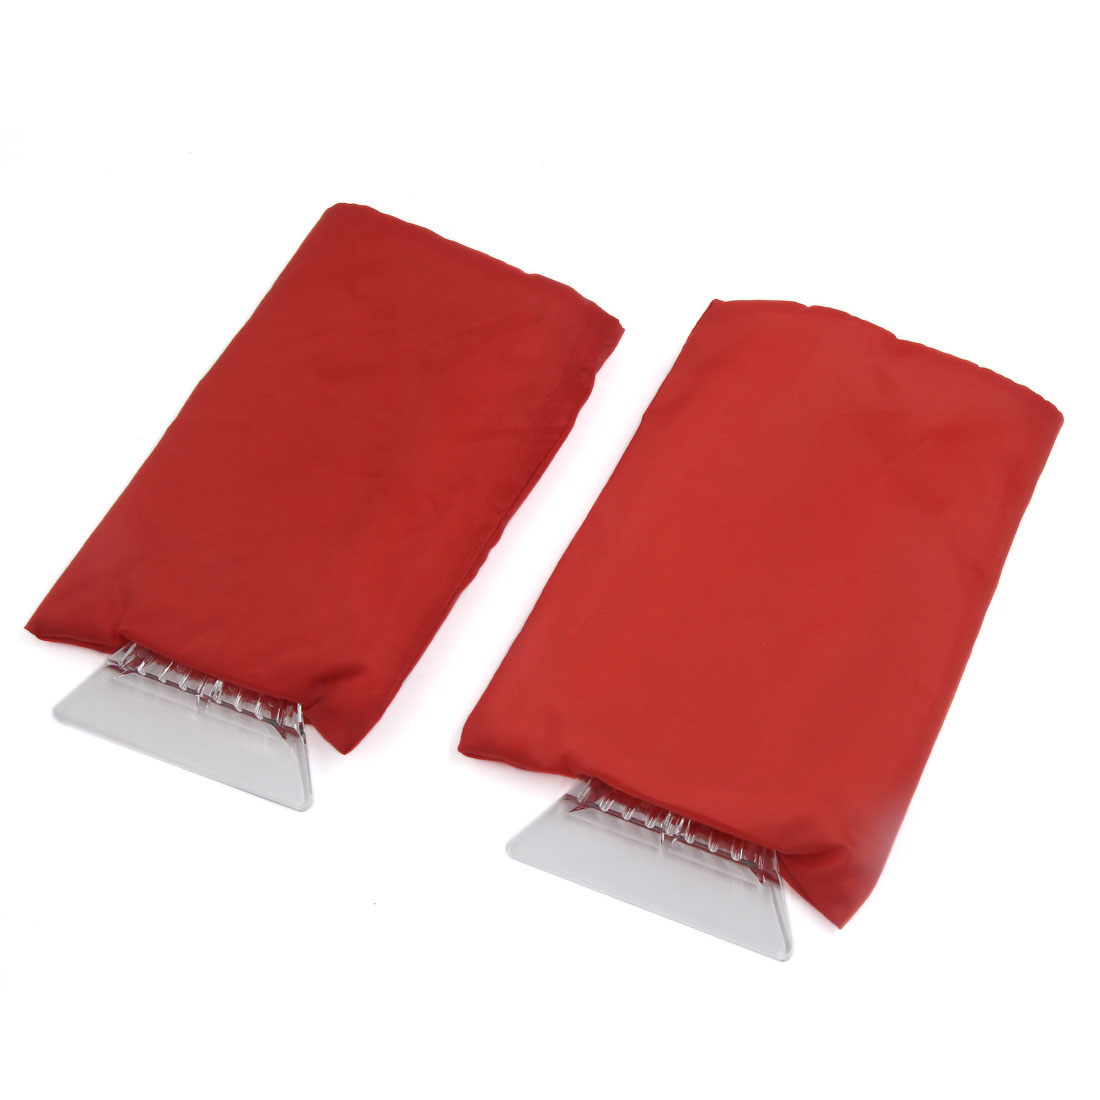 2 Pcs Red Handle Snow Shovel Ice Scraper w Fleece Lining Glove for Auto Car